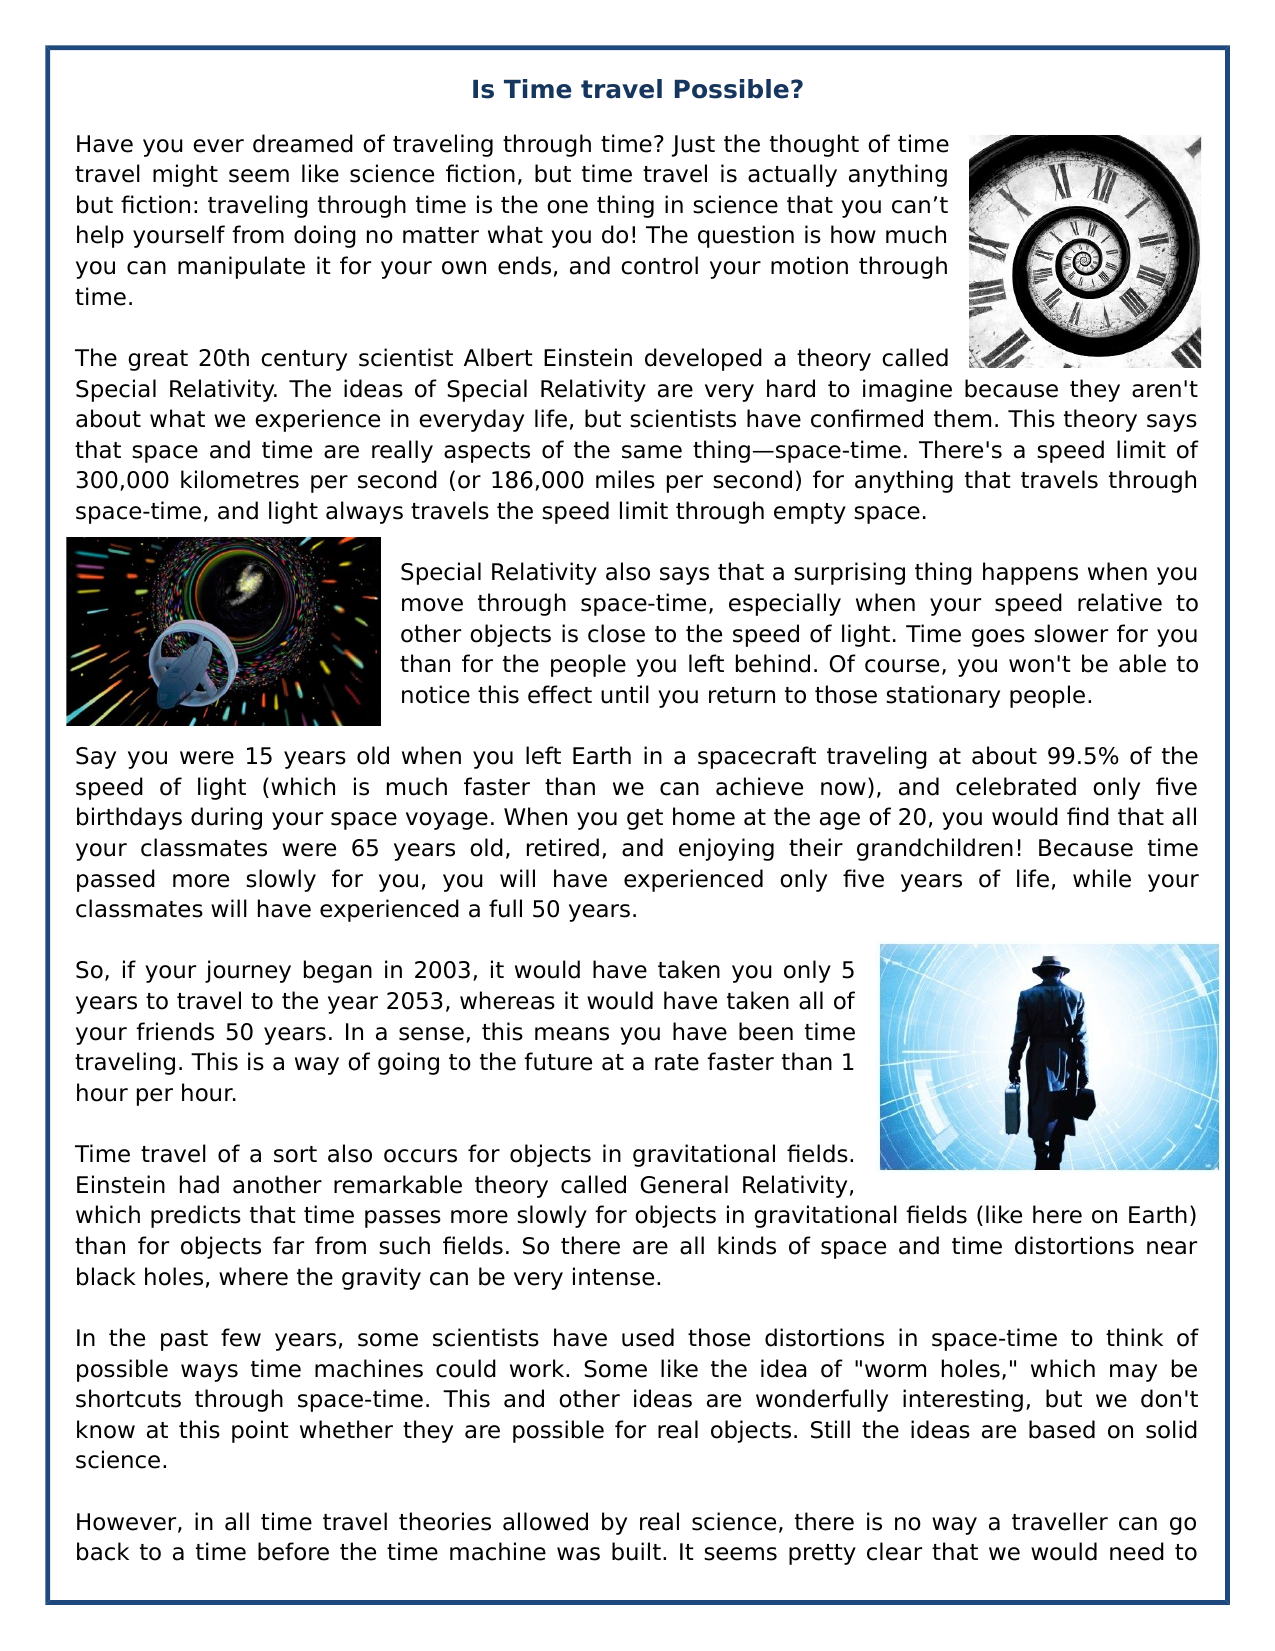 Is Time Travel Possible Reading Comprehension Informational Text Teaching Resources Reading Comprehension Informational Text Comprehension [ 1651 x 1275 Pixel ]